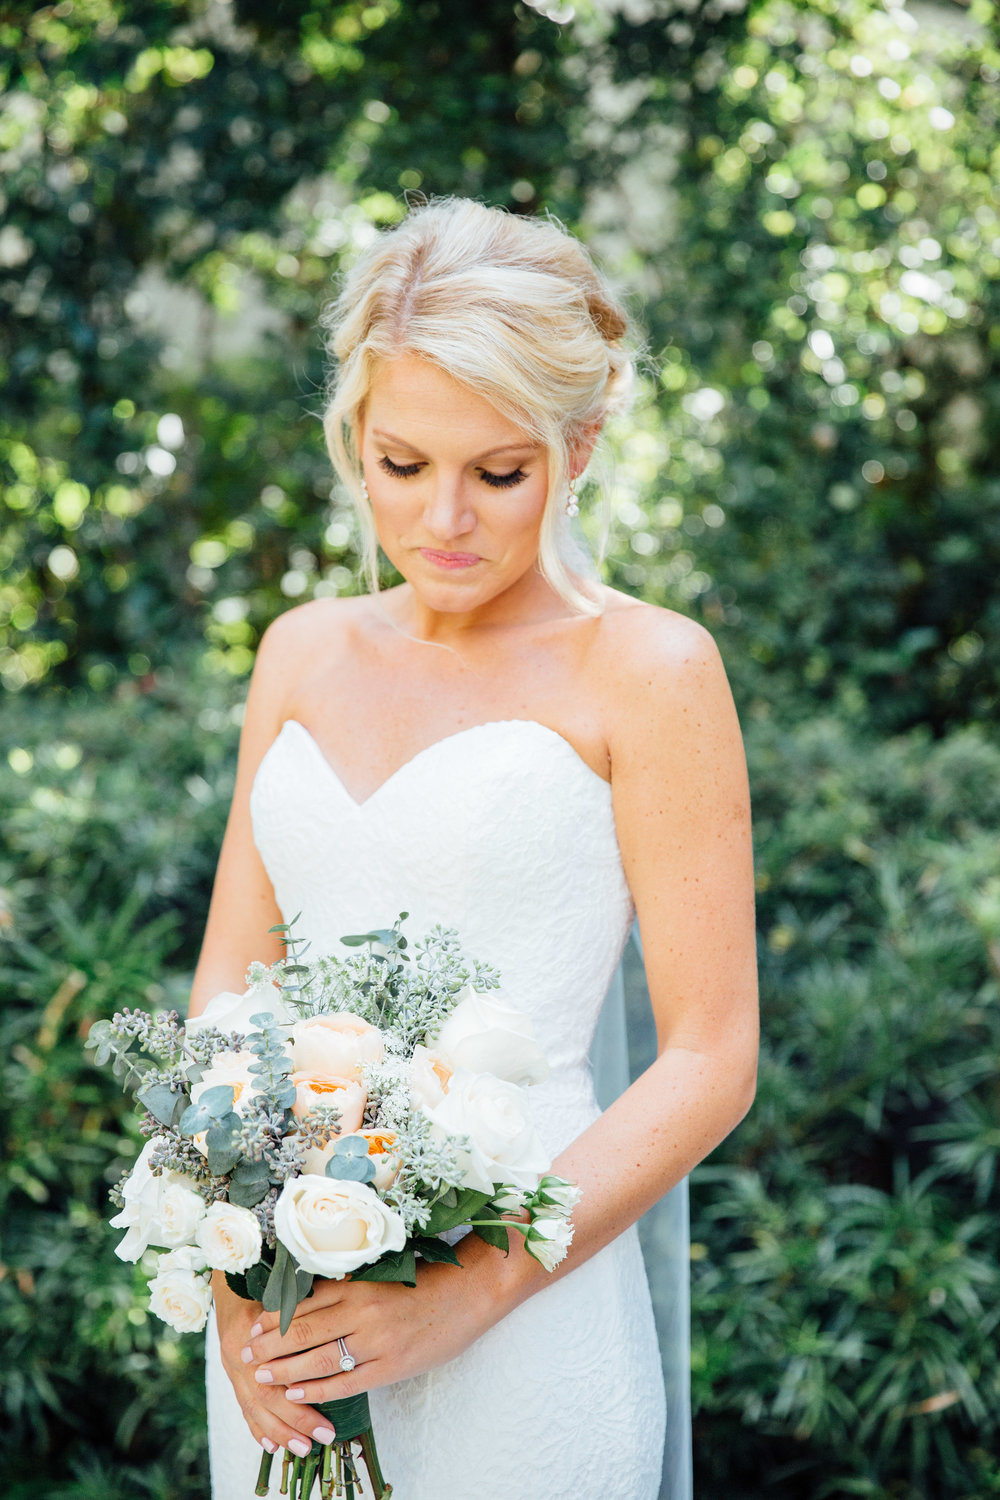 anna-benton-photography-savannah-bridal-boutique-ivory-and-beau-bridal-boutique-ti-adora-7552-lace-wedding-dress-jaclyn-jordan-anne-veil-southern-wedding-savannah-wedding-coastal-wedidng-savannah-wedding-planner-savannah-florist-savannah-weddings-2.jpg